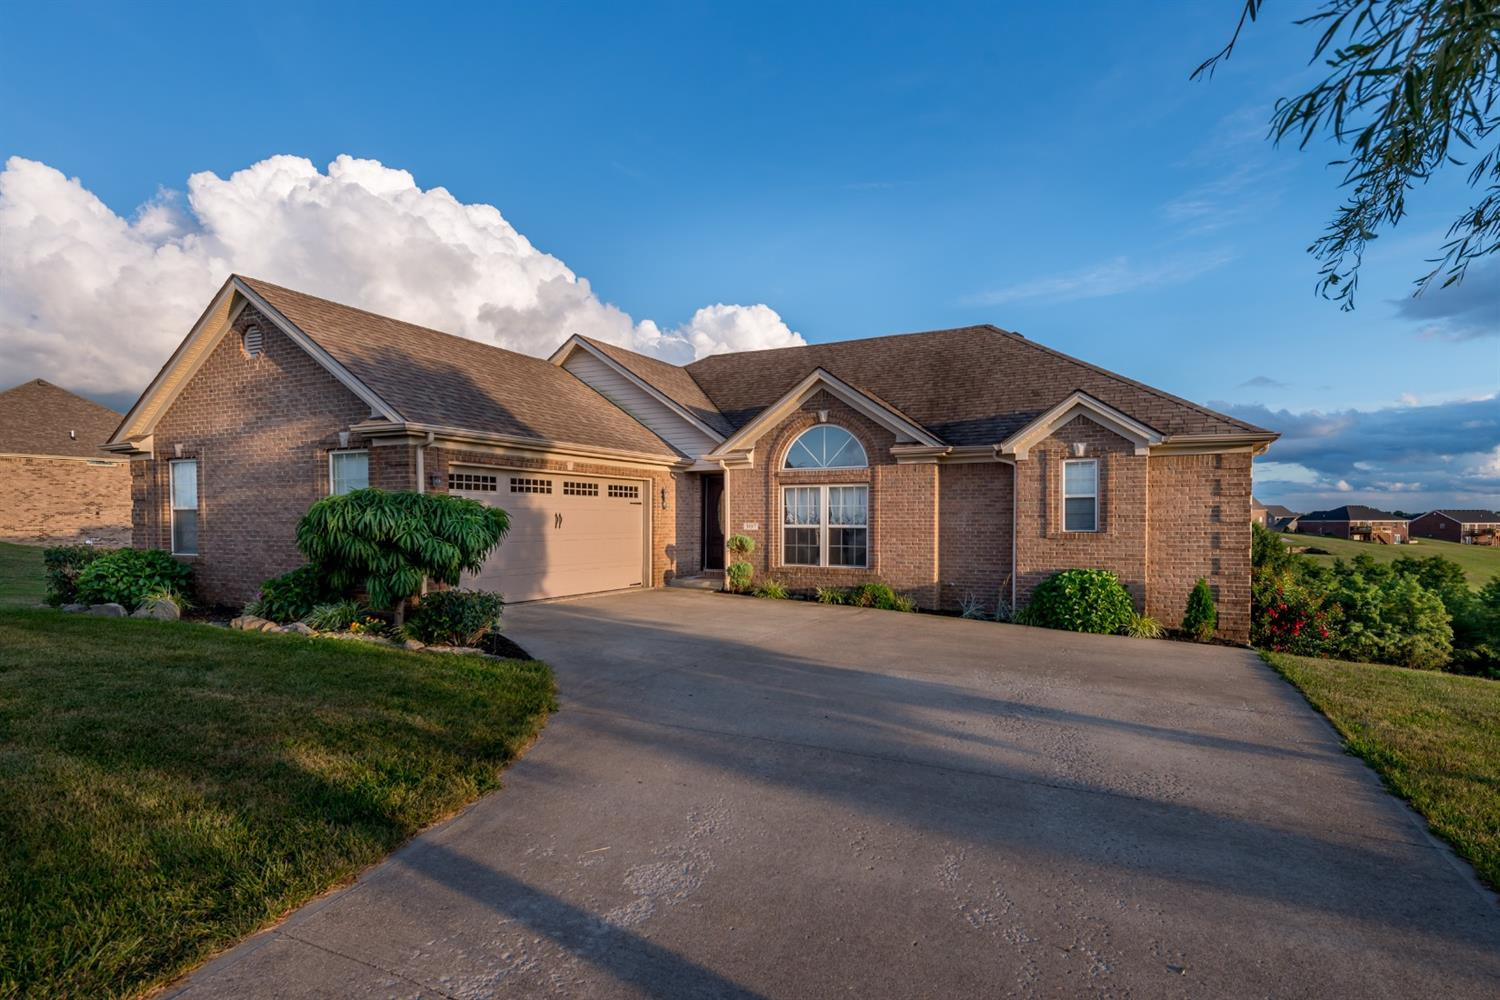 307 Sweet Grass Way, Richmond, KY 40475